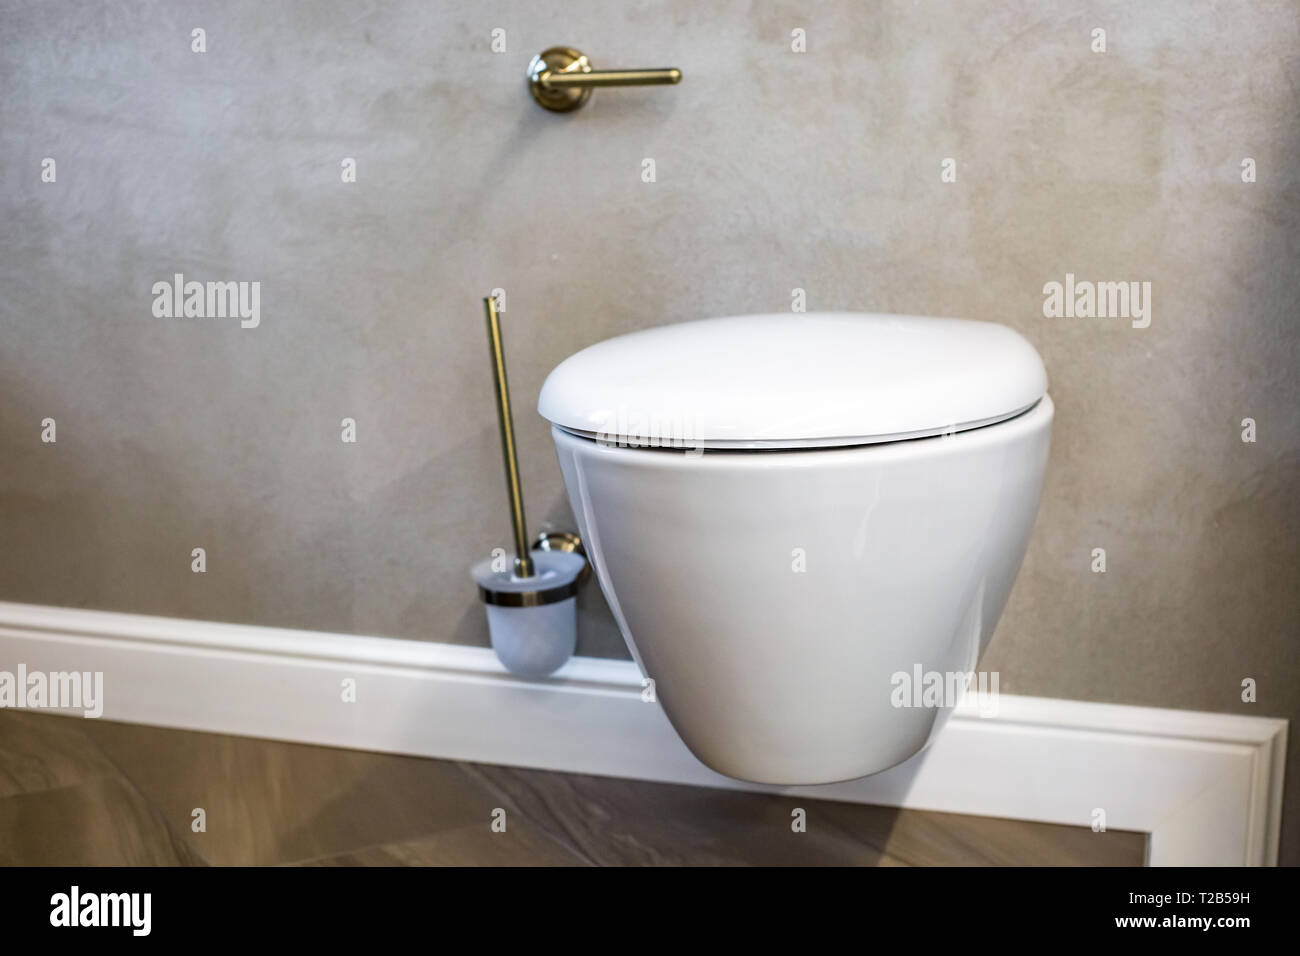 toilet and detail of a corner shower bidet with wall mount shower attachment - Stock Image